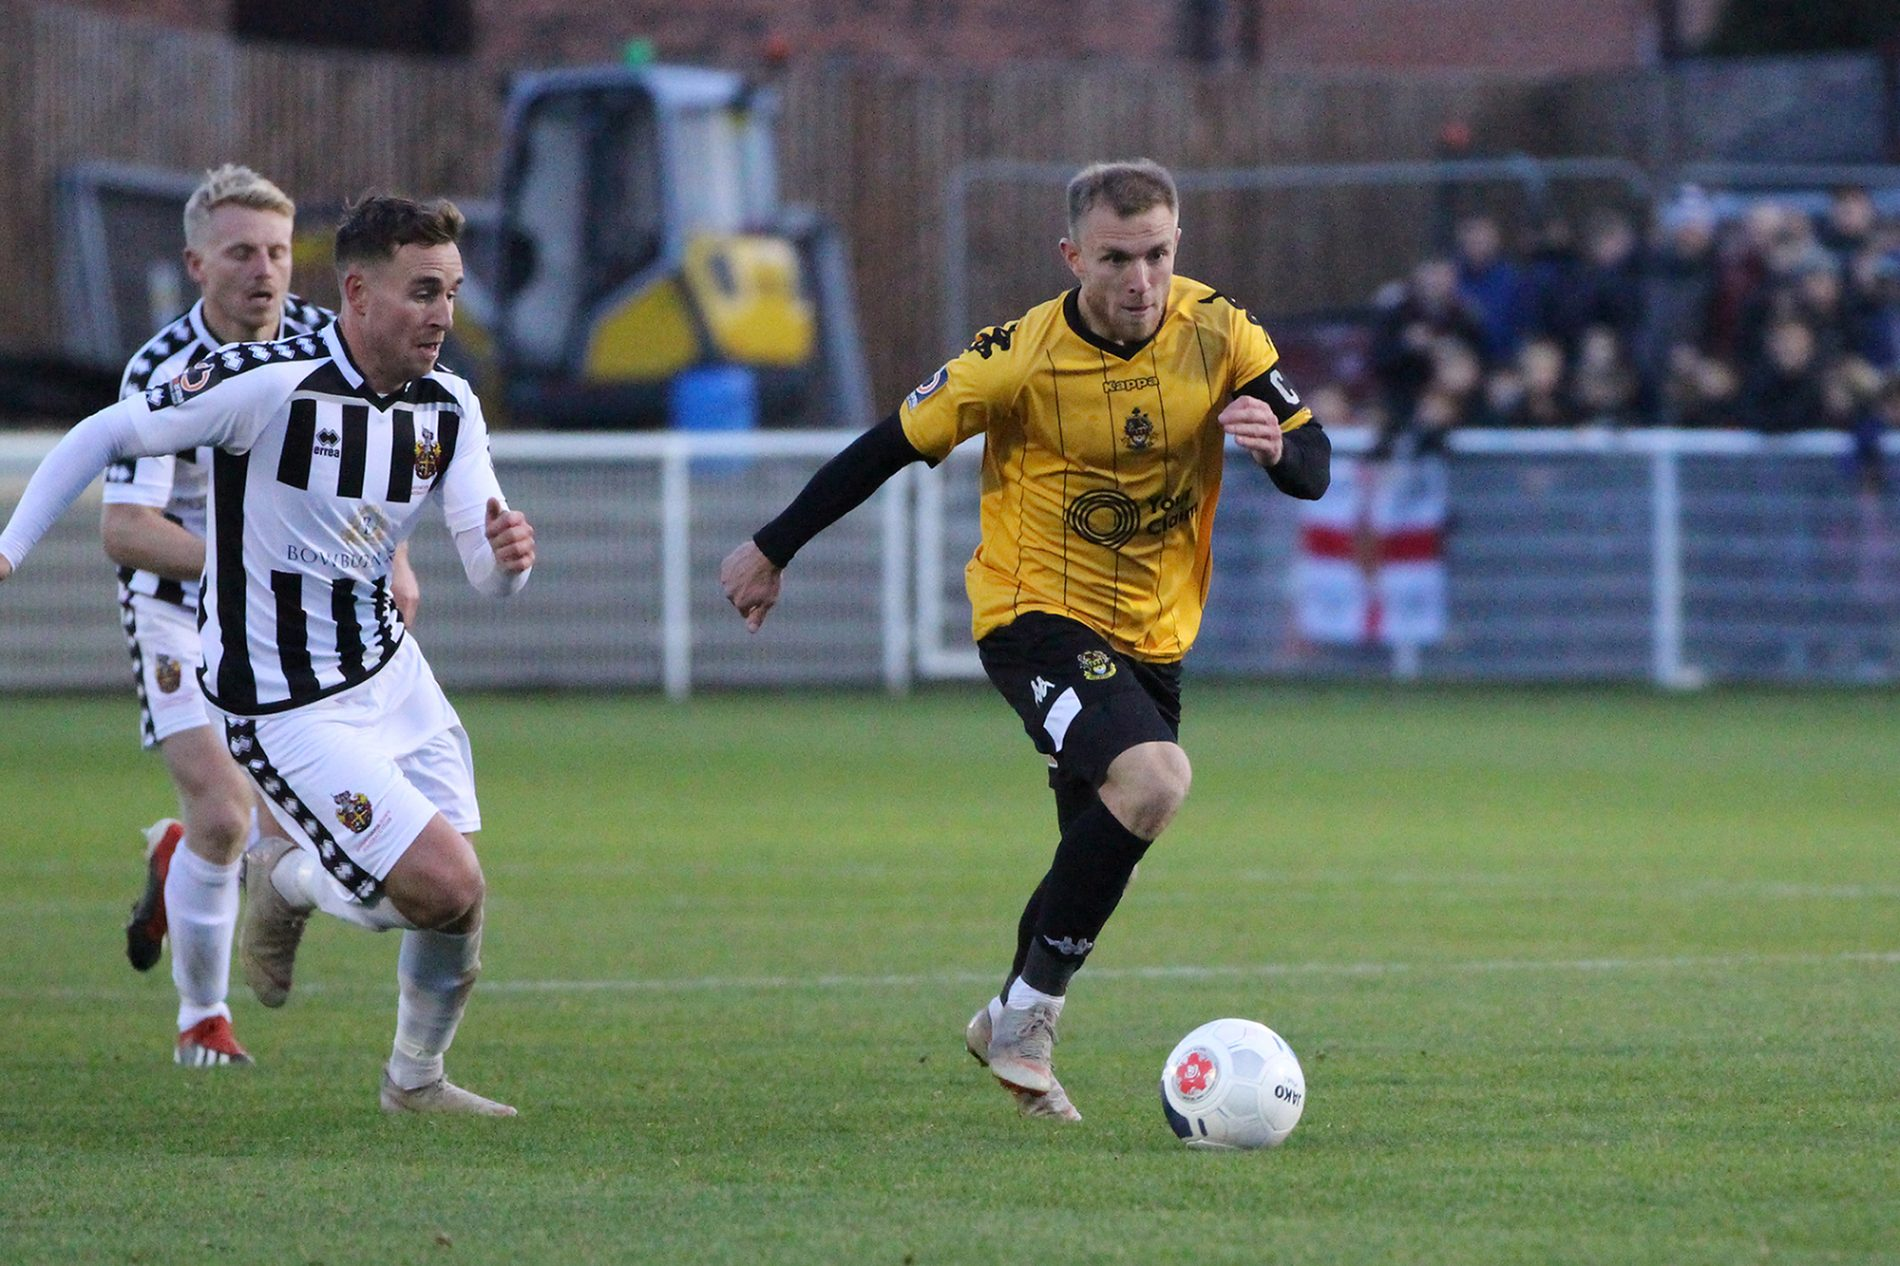 PREVIEW | Moors In Town